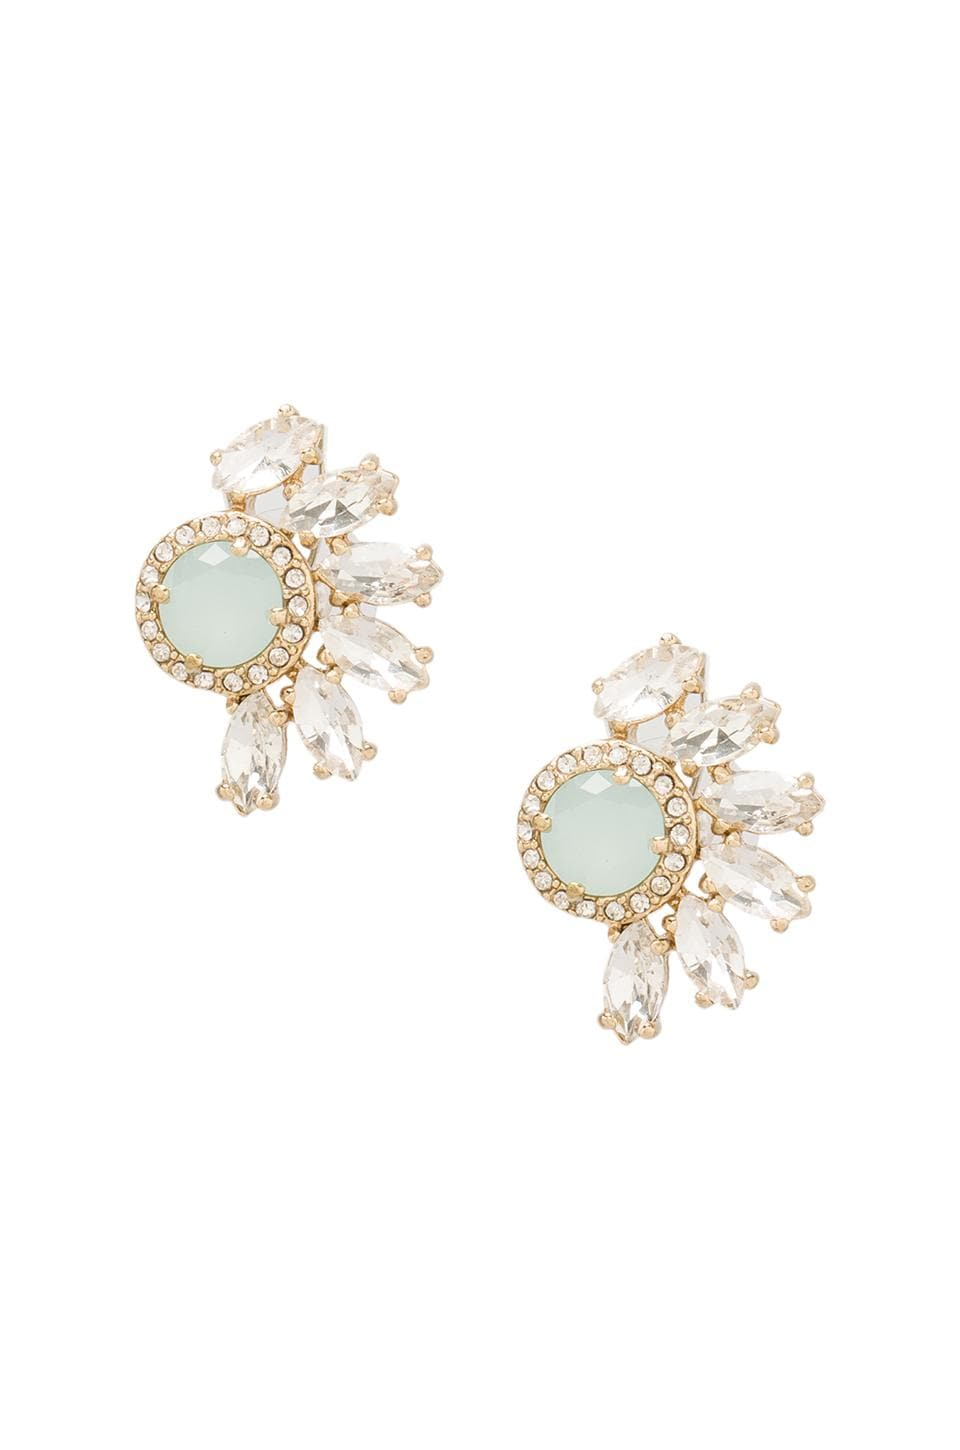 Juicy Couture Marquise Cluster Rhinestone Studs in Green